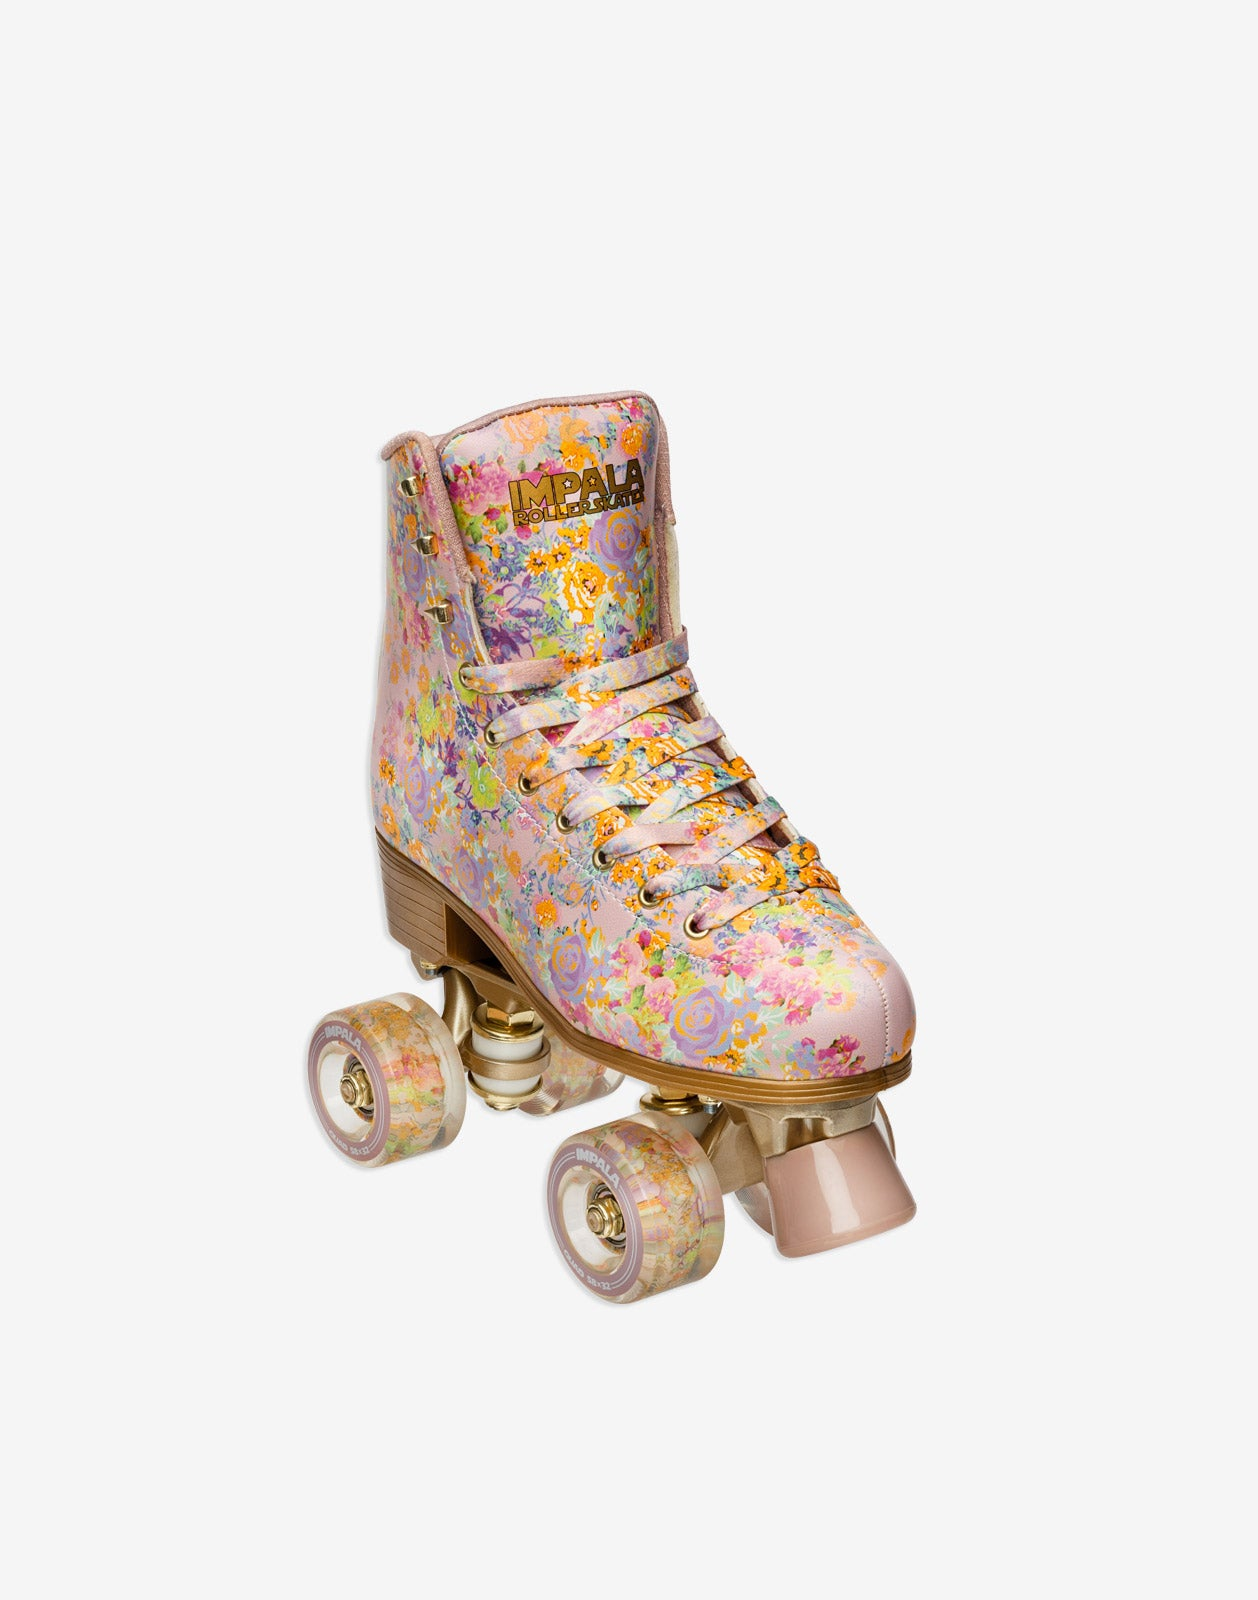 Alternate side view Cynthia Rowley x Impala Floral Rollerskate